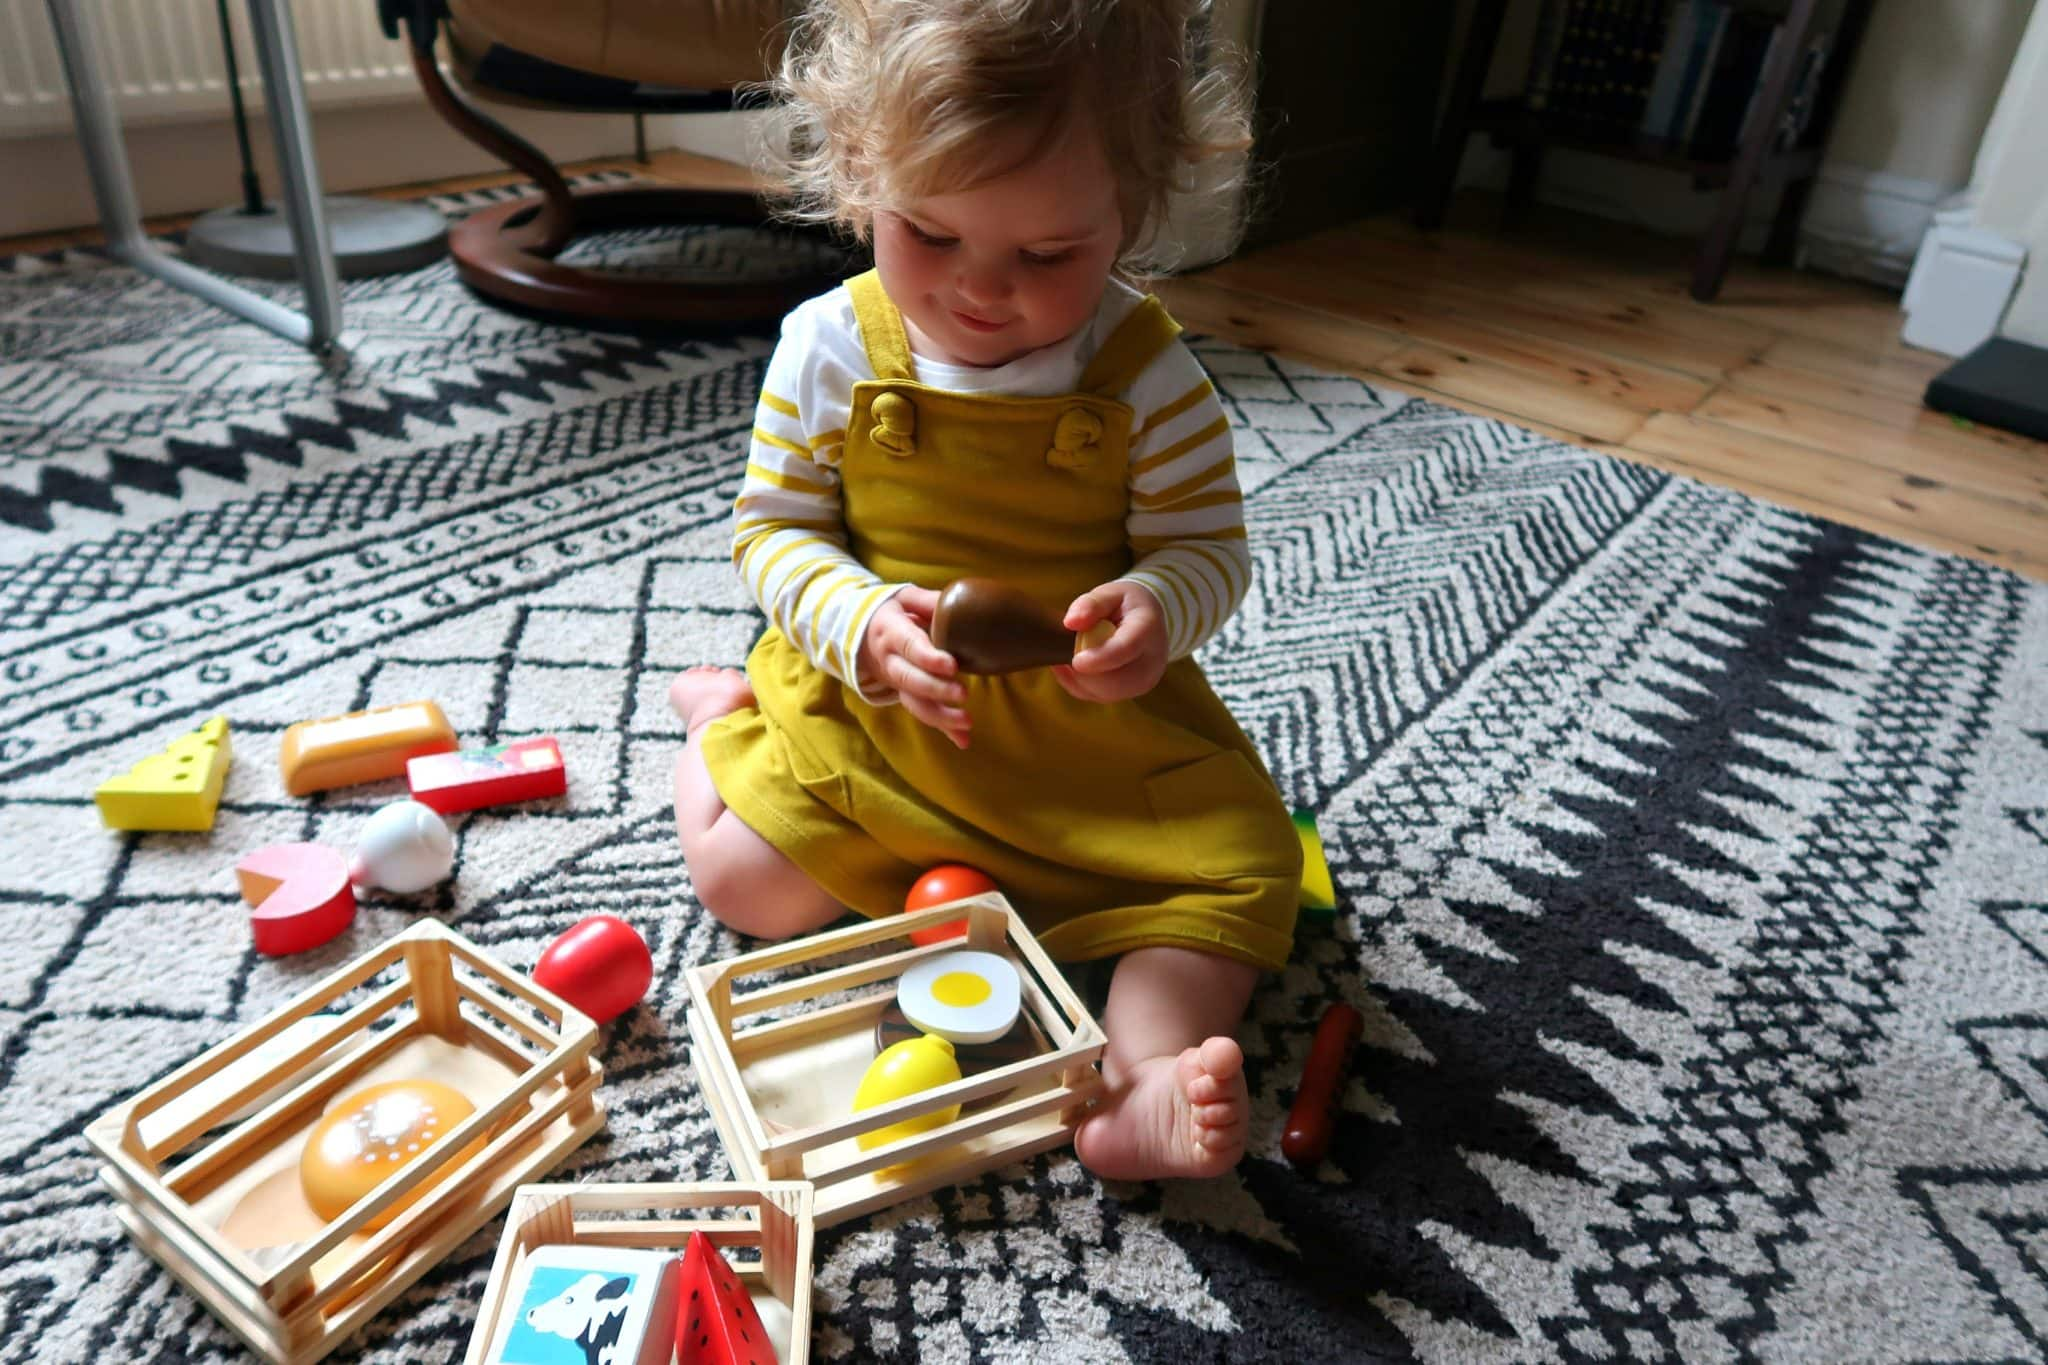 Little girl in a yellow dress smiling at wooden food in activities to do with your toddler